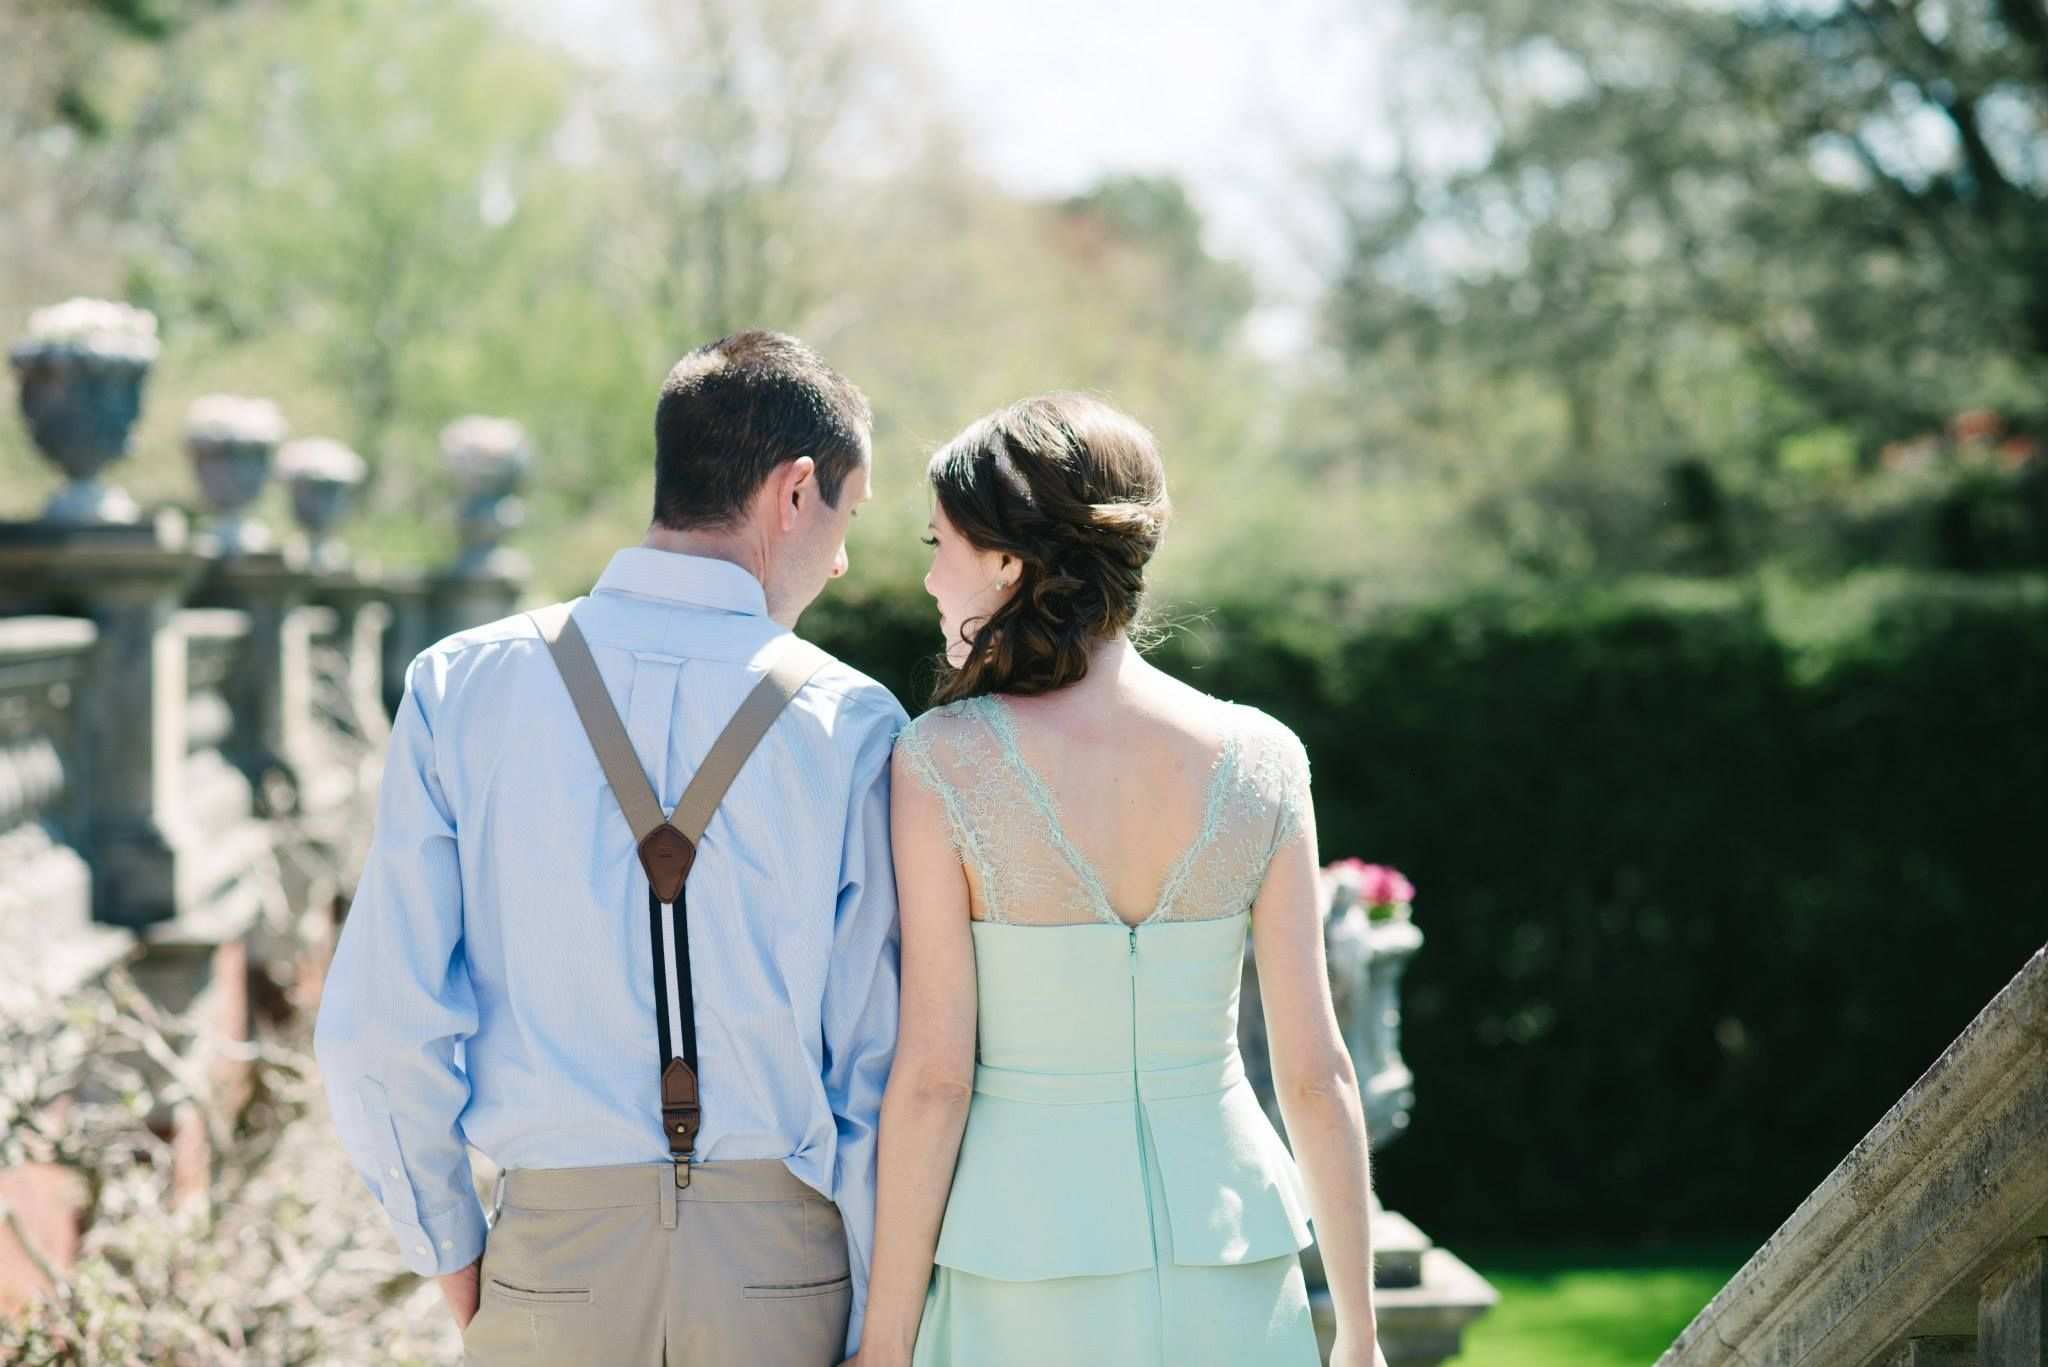 Engagement Photos at Old Westbury Gardens, NY. Makeup And